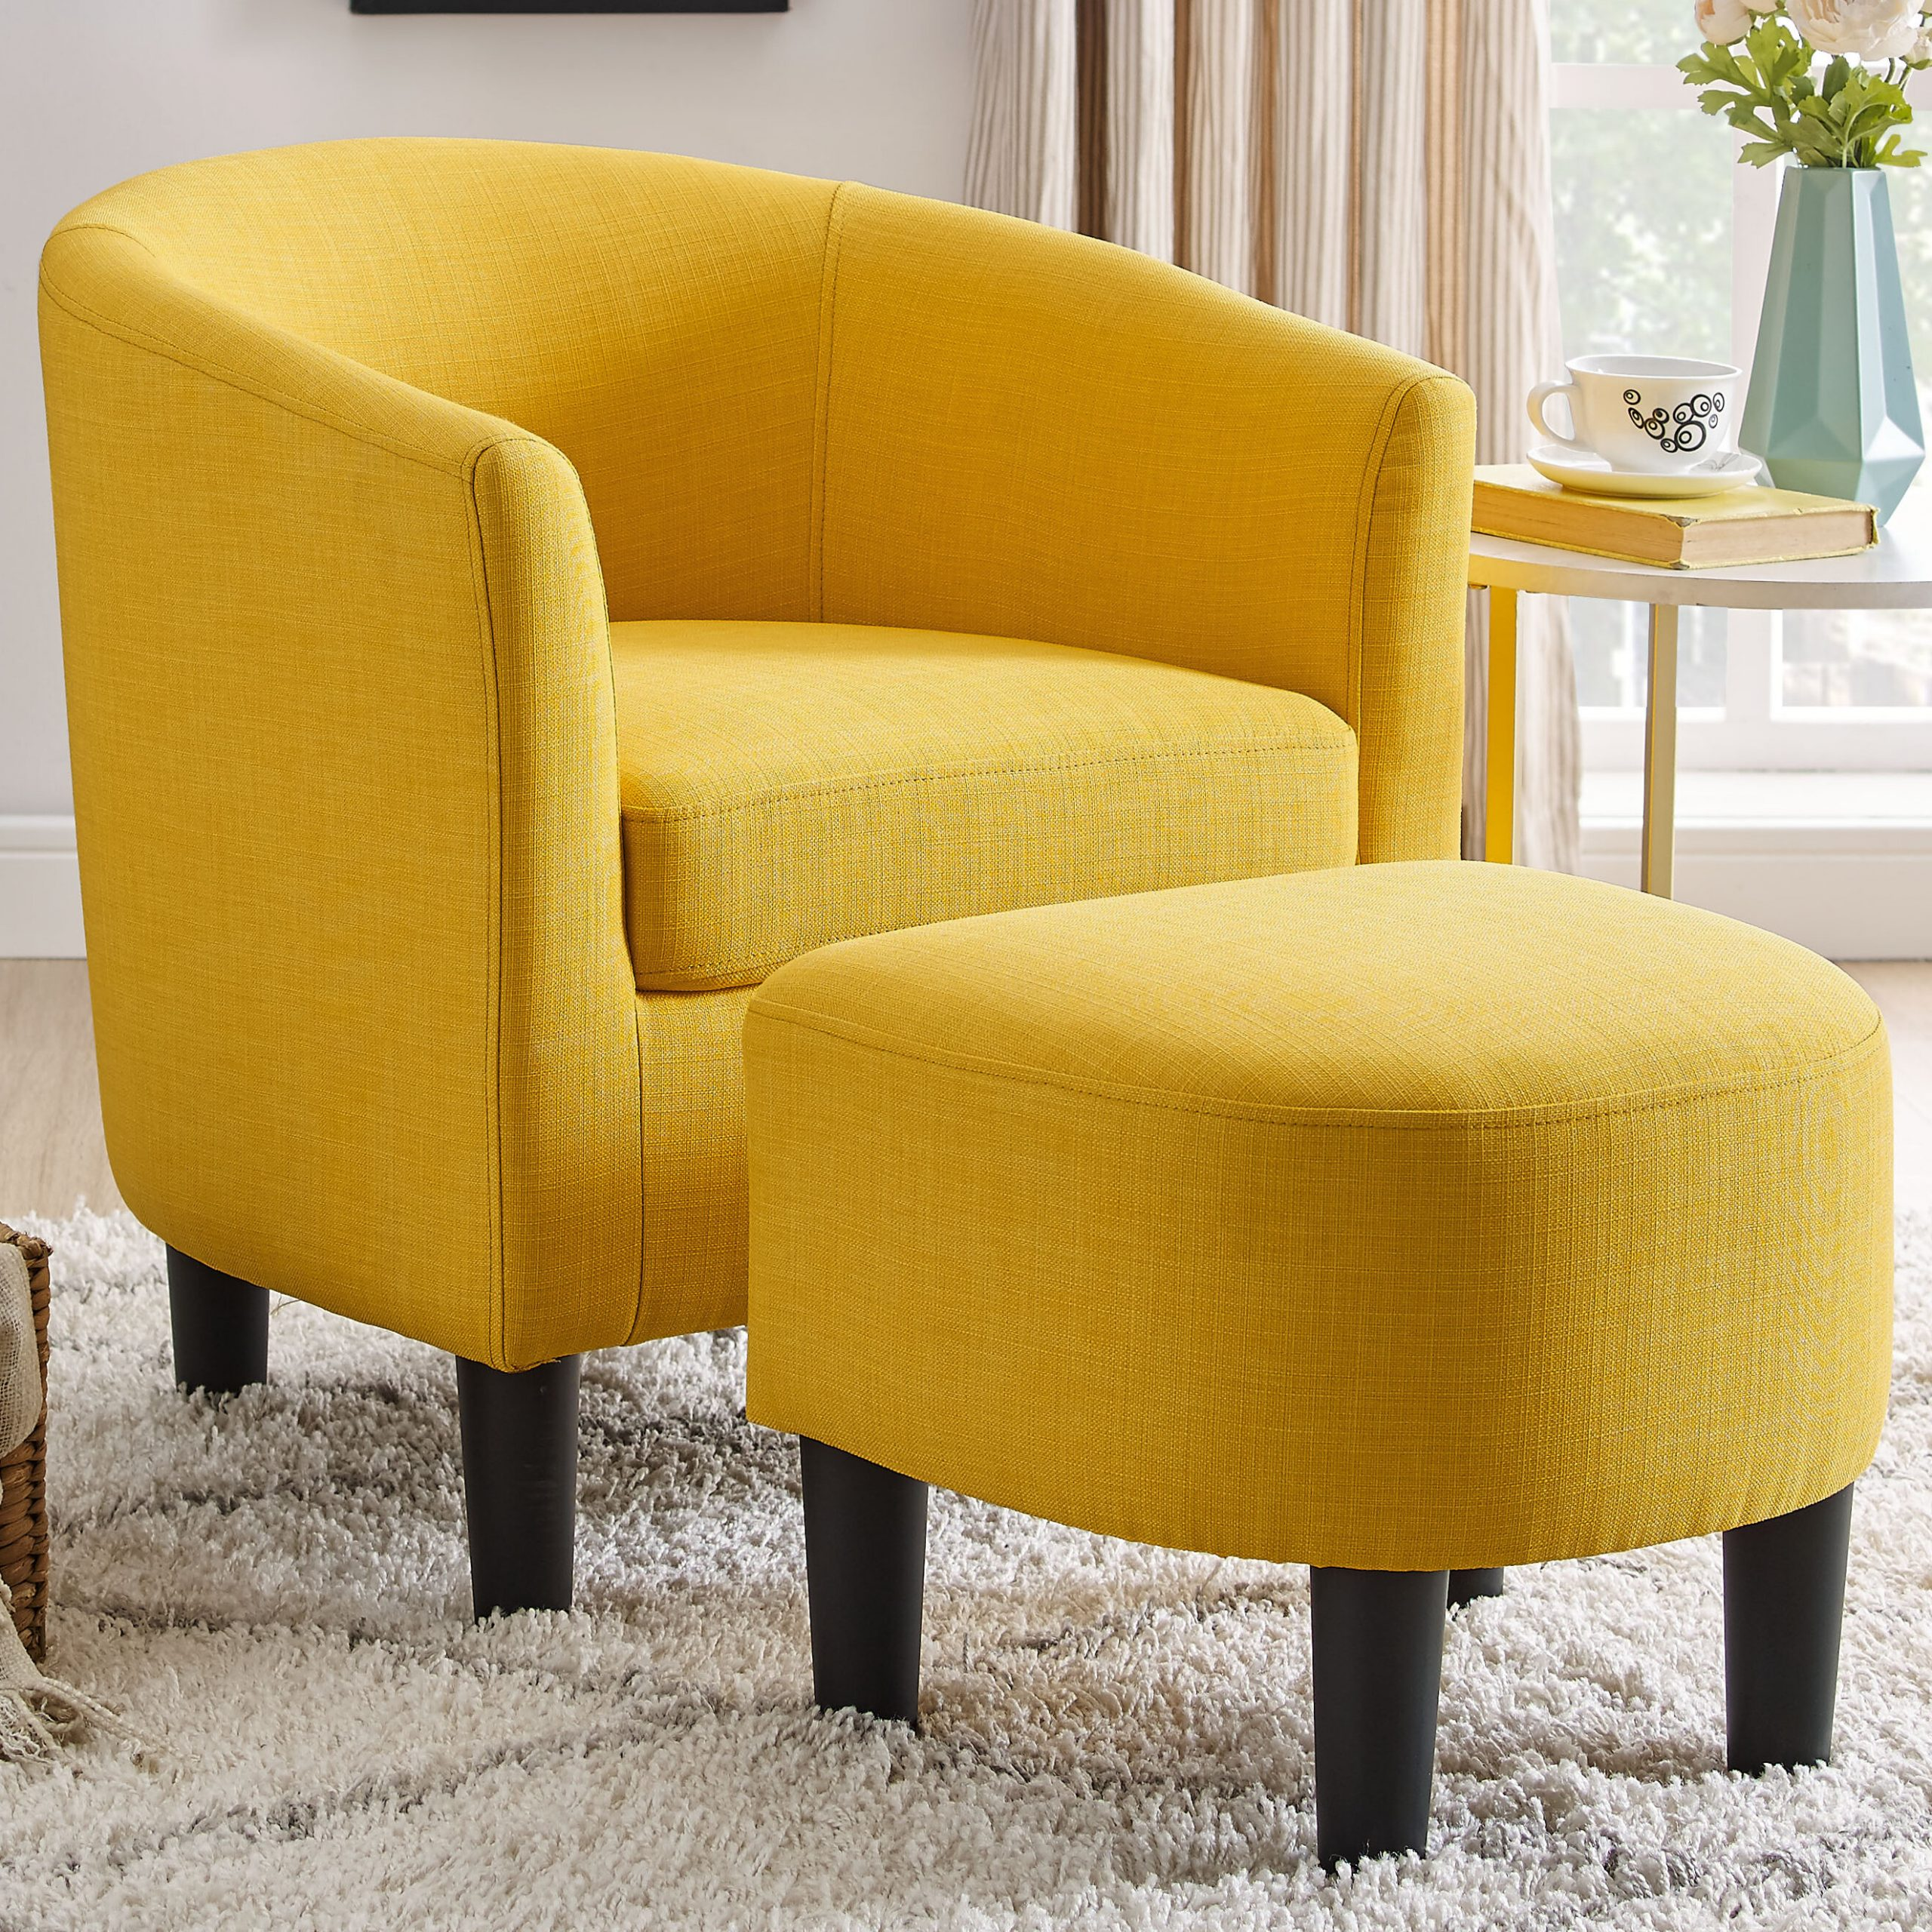 Orange & Yellow Accent Chairs You'Ll Love In 2021   Wayfair Inside Artemi Barrel Chair And Ottoman Sets (View 4 of 15)